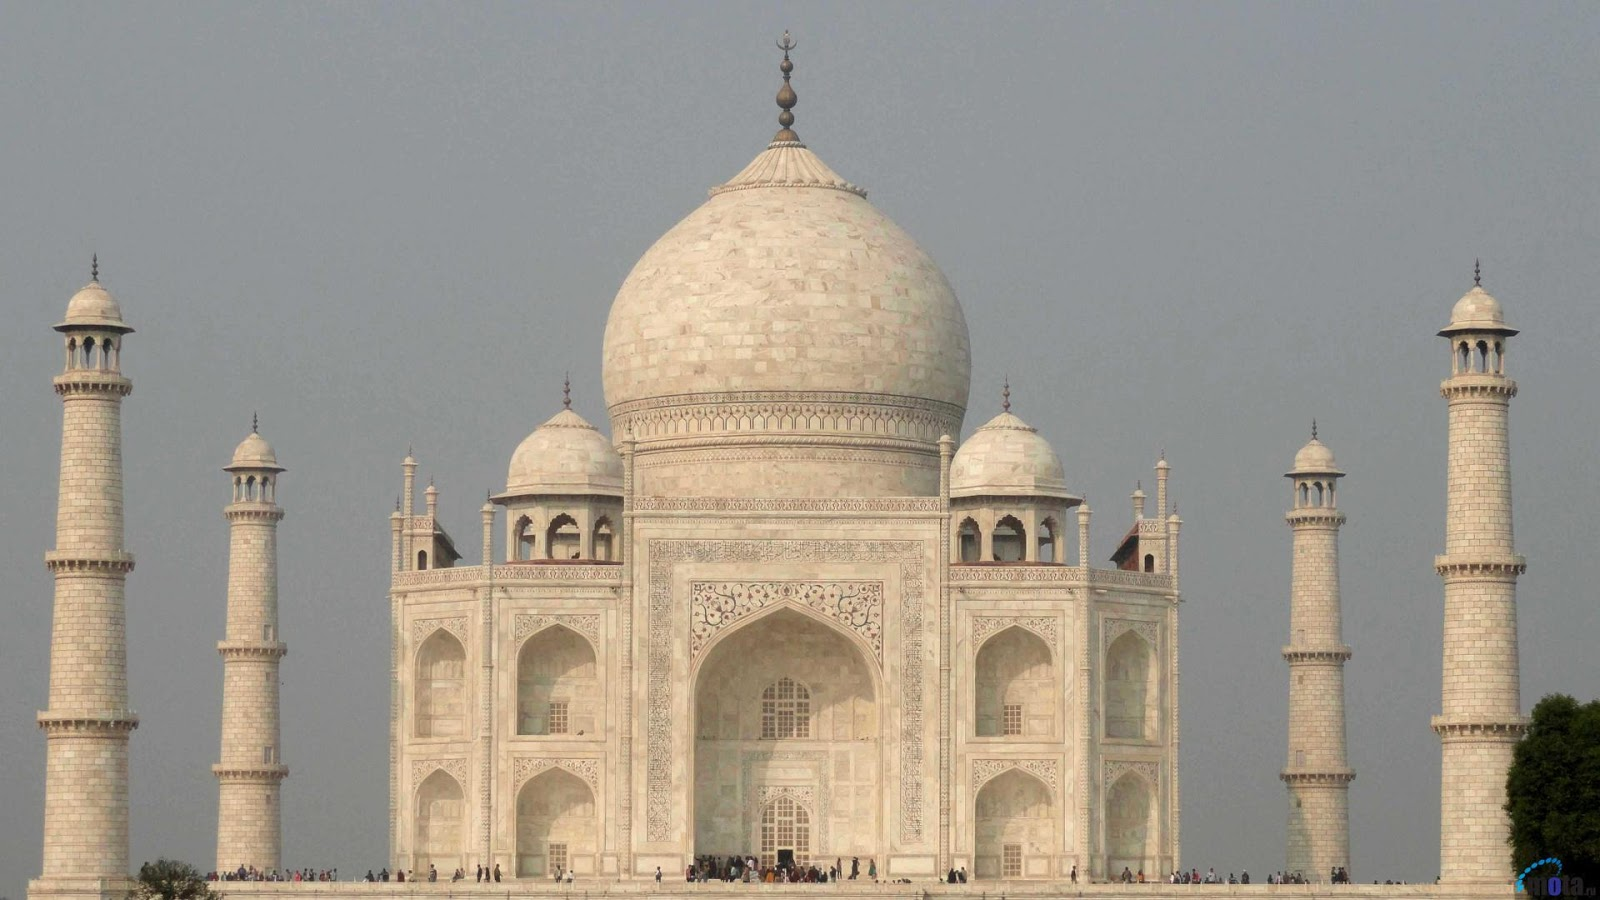 The best wallpapper top 15 taj mahal full hd wallpaper - Taj mahal screensaver free download ...